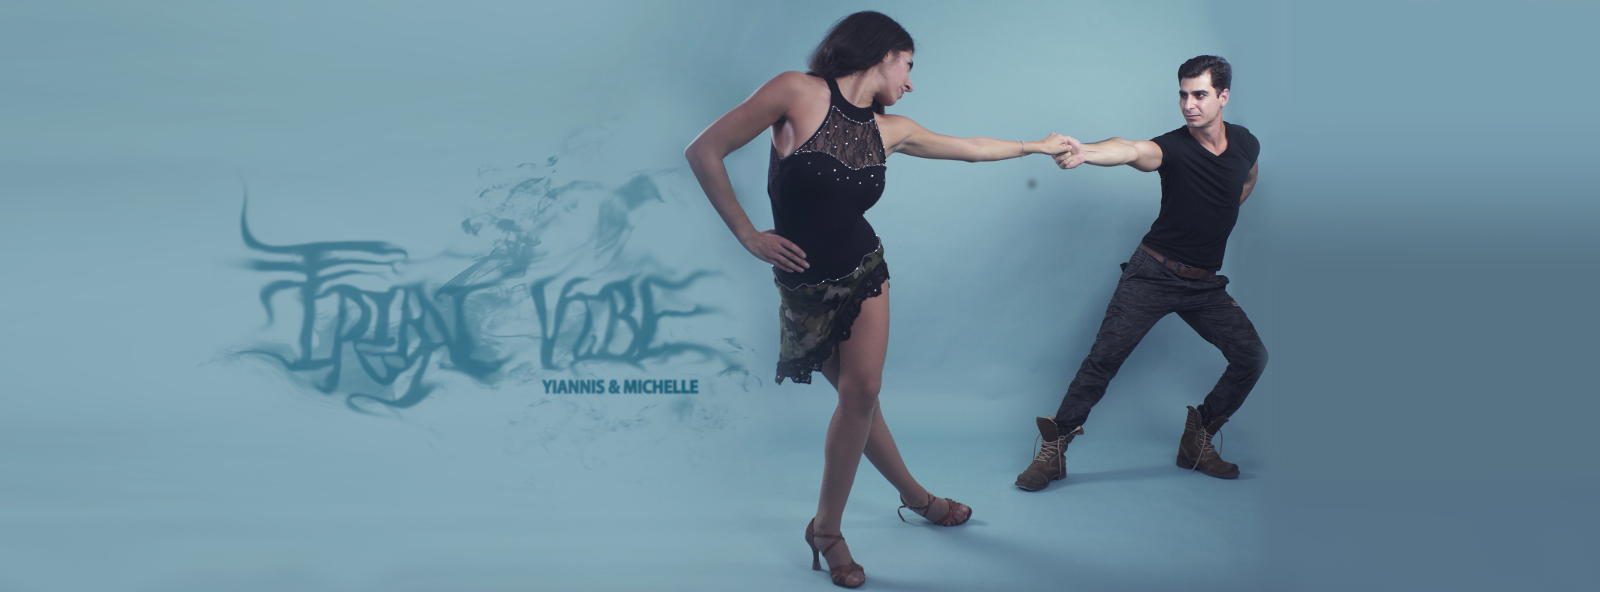 Tribal Vibe Dancers Profile Image  - Ballet & Dancing Schools - On XploreCyprus